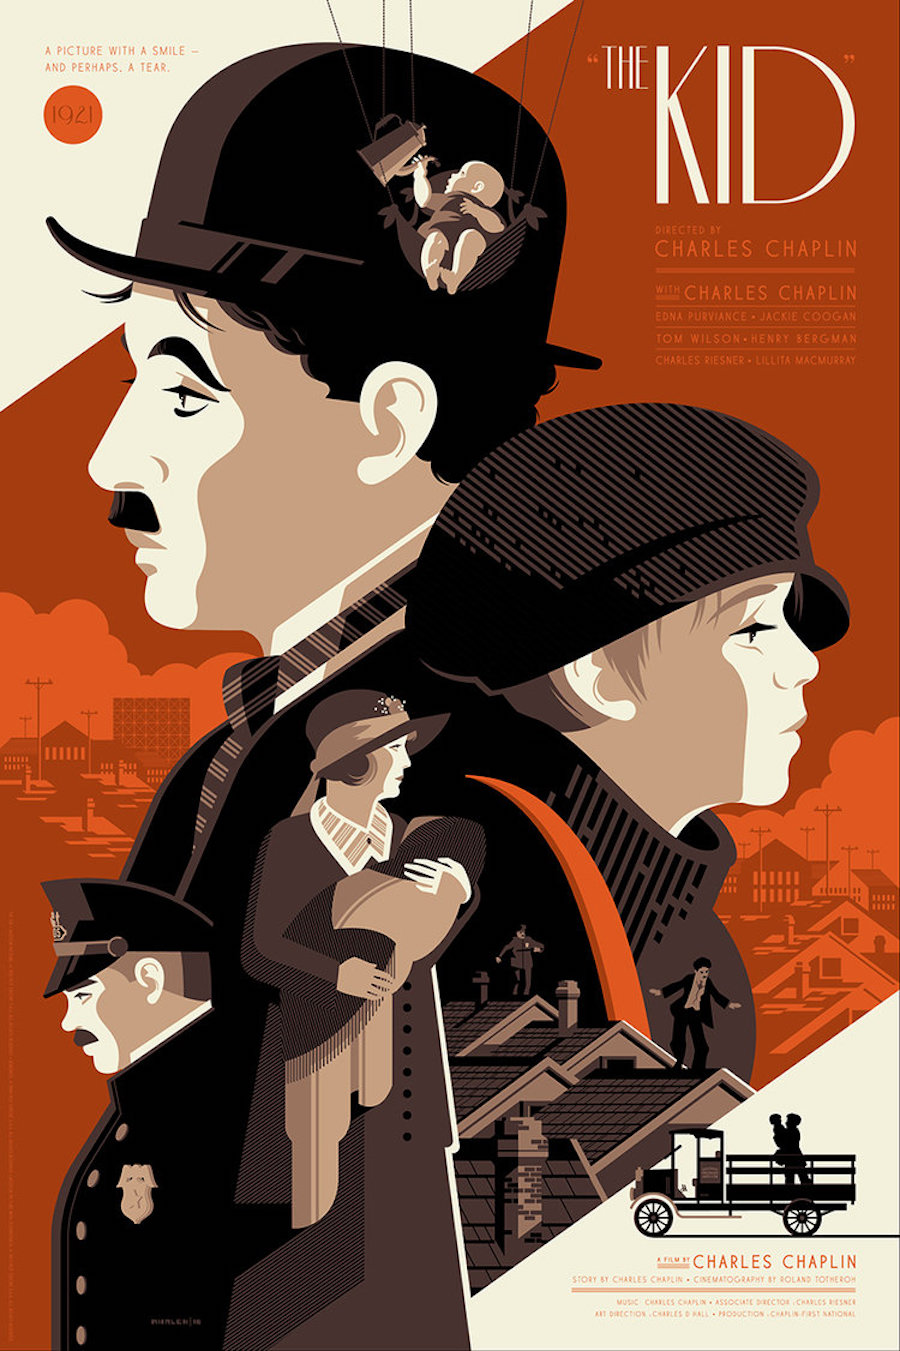 Artwork by Tom Whalen.